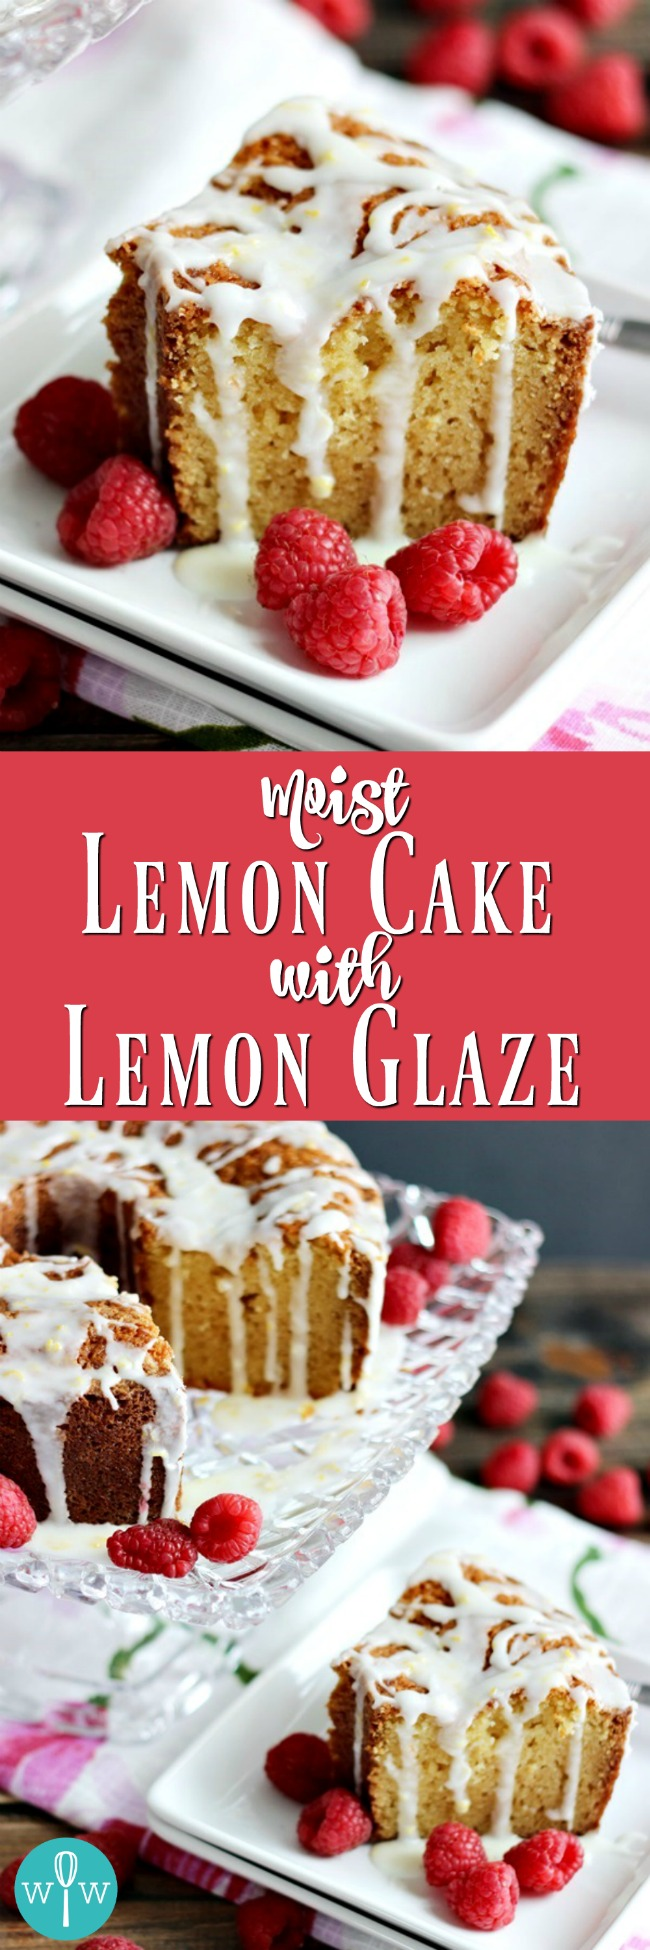 Moist Lemon Cake with Lemon Glaze - A moist, tender cake with a tart and sweet lemon glaze. A delicious spring and summer recipe! | www.worthwhisking.com